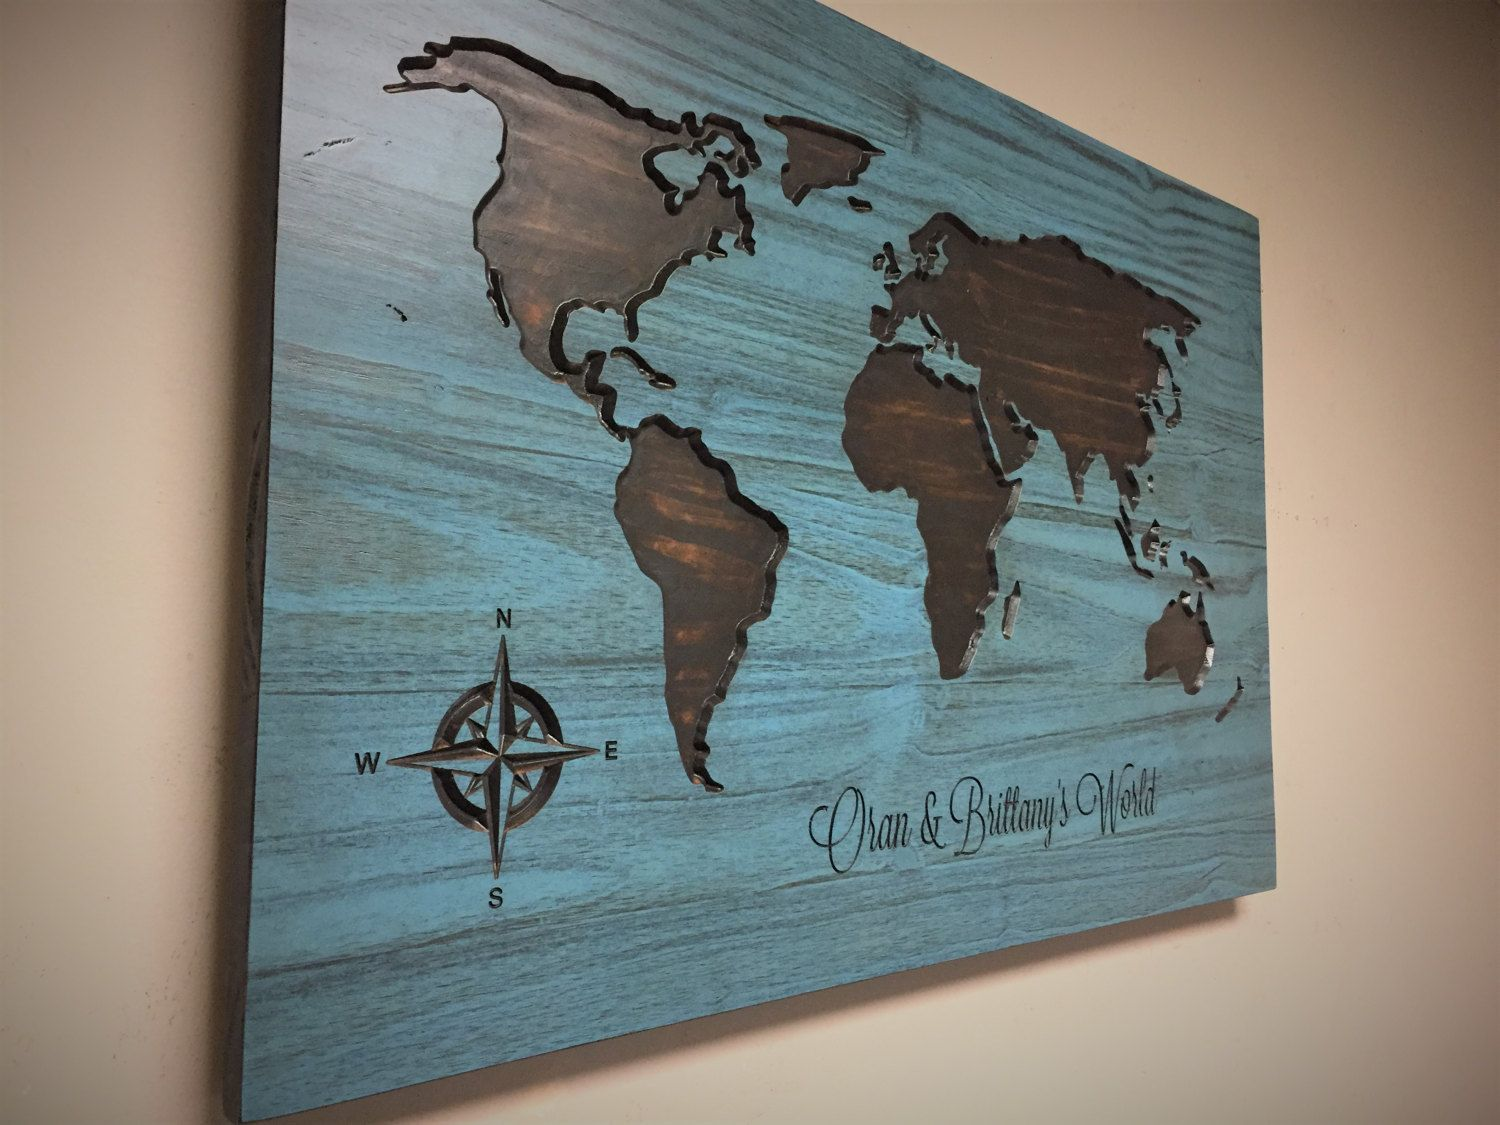 World map wall art family name sign wedding gift wedding world map wall art family name sign wedding gift wedding guestbook idea carved hand painted hand stained map gumiabroncs Image collections